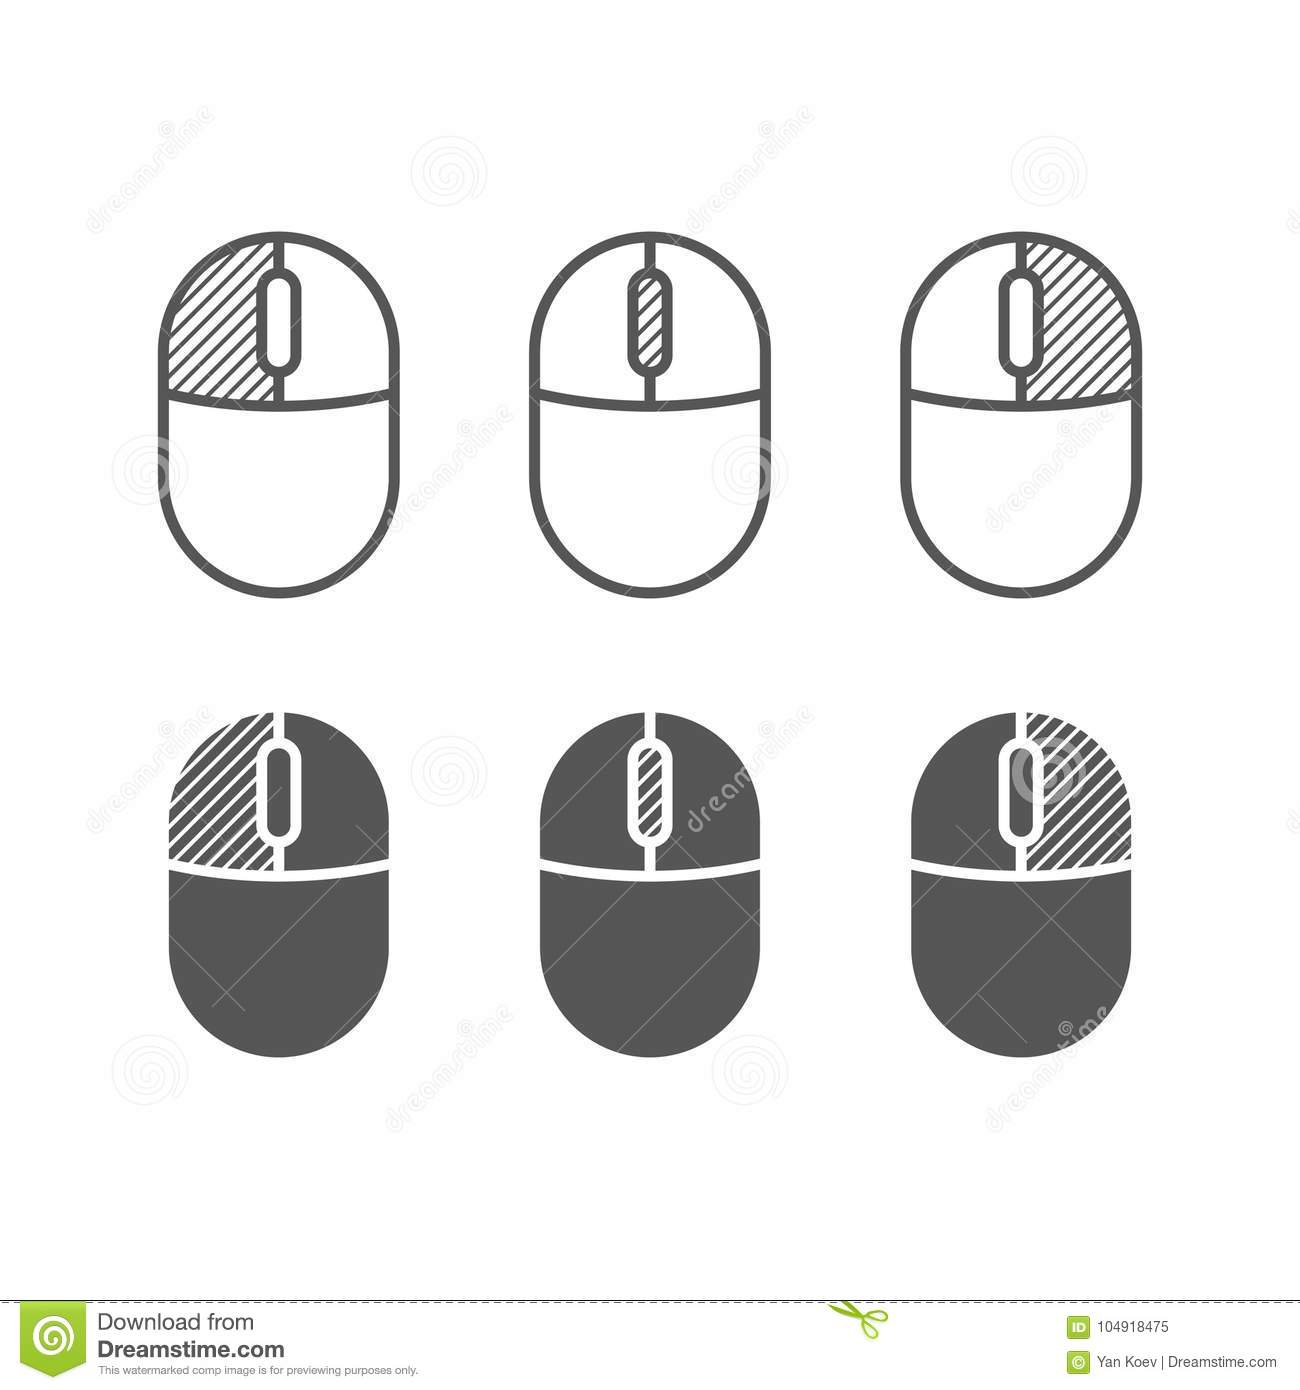 Computer mouse buttons icon. One color symbols.